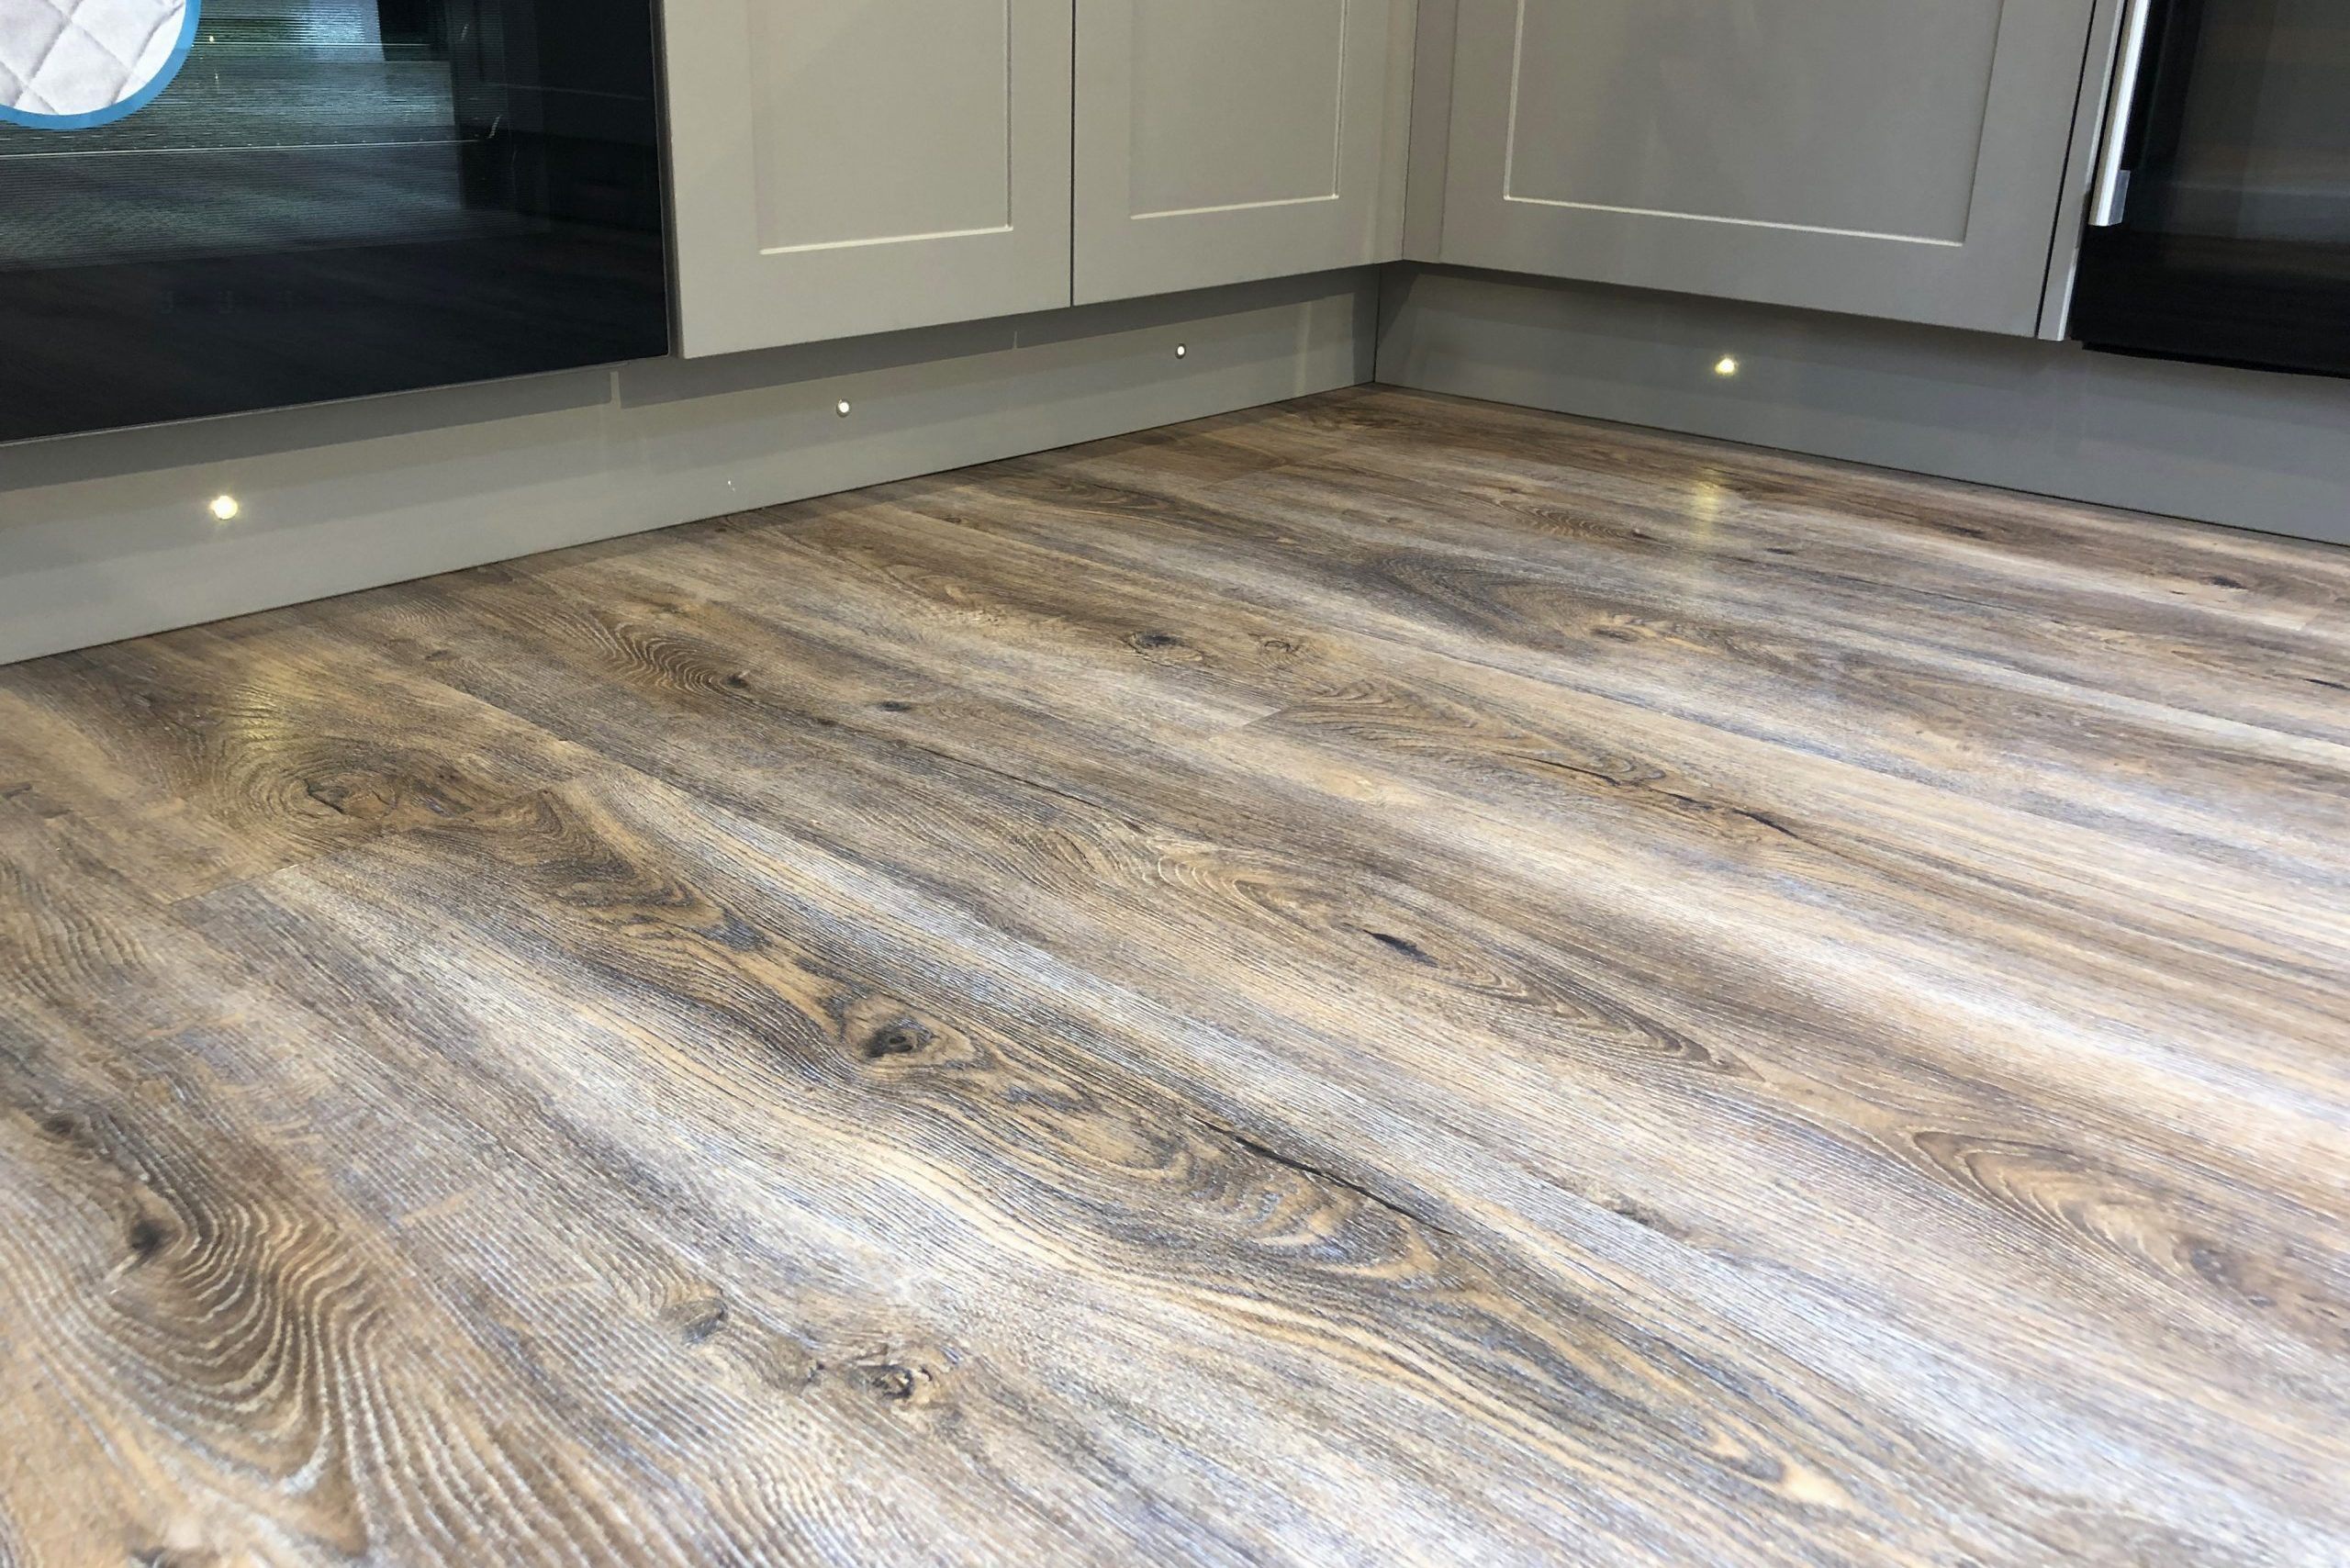 Flooring Industry News October 2020